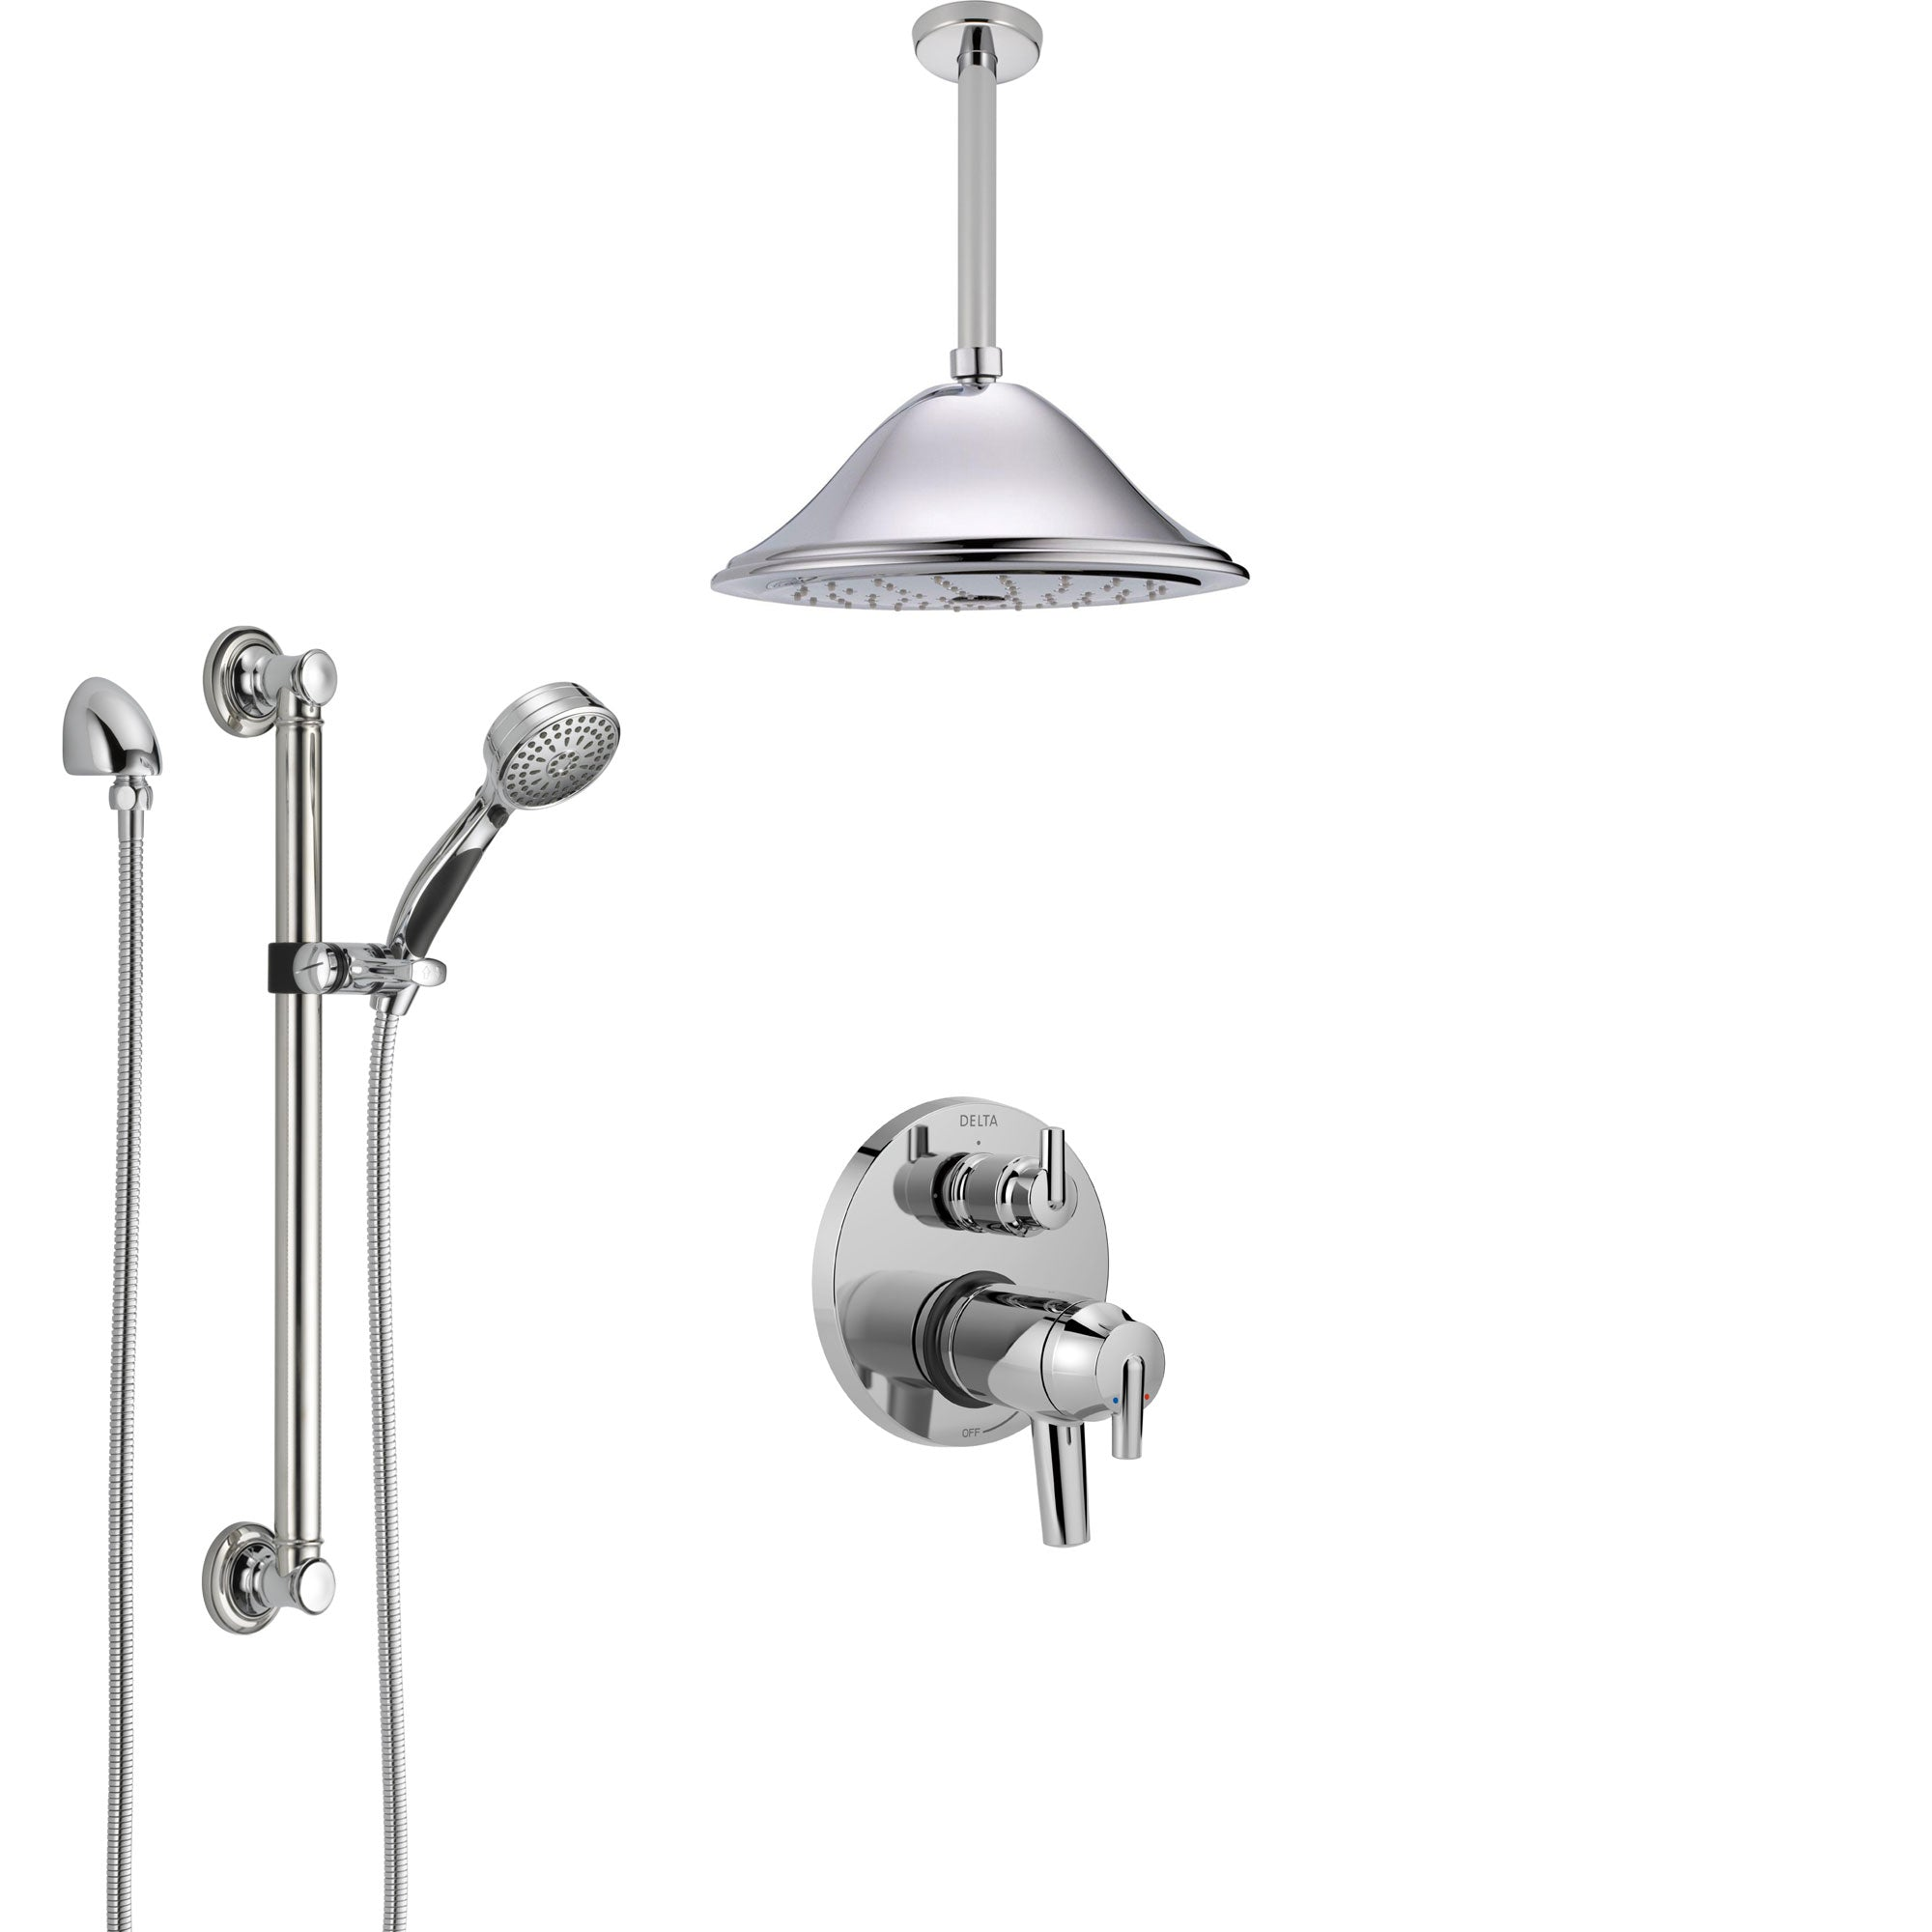 Delta Trinsic Chrome Integrated Diverter Shower System with Dual Thermostatic Control, Ceiling Mount Showerhead, and Grab Bar Hand Shower SS27T8591